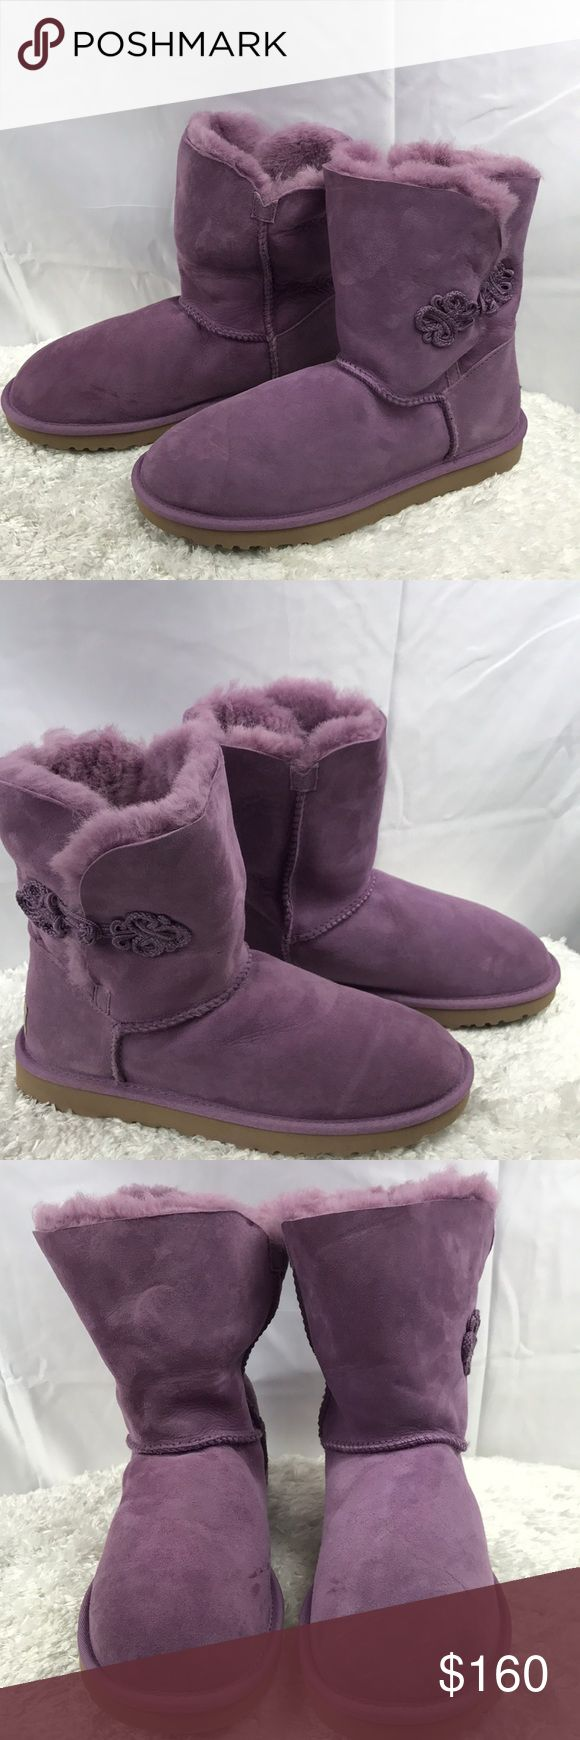 UGG Australia Bailey Mariko Genuine Shearling Boot GENTLY USED (SEE PHOTOS). NO BOX INCLUDED.  100% AUTHENTIC.   -A beautiful braided knot trims the buttoned shaft of a chic short boot that can be cuffed for cute variation.  - The soft, cozy lining is made from genuine shearling with a plush UGGpure(TM) footbed to keep feet warm and comfortable. - UGGpure is a moisture-wicking textile made entirely from wool but crafted to feel & wear like genuine shearling.  NOTE: This item is gently used…